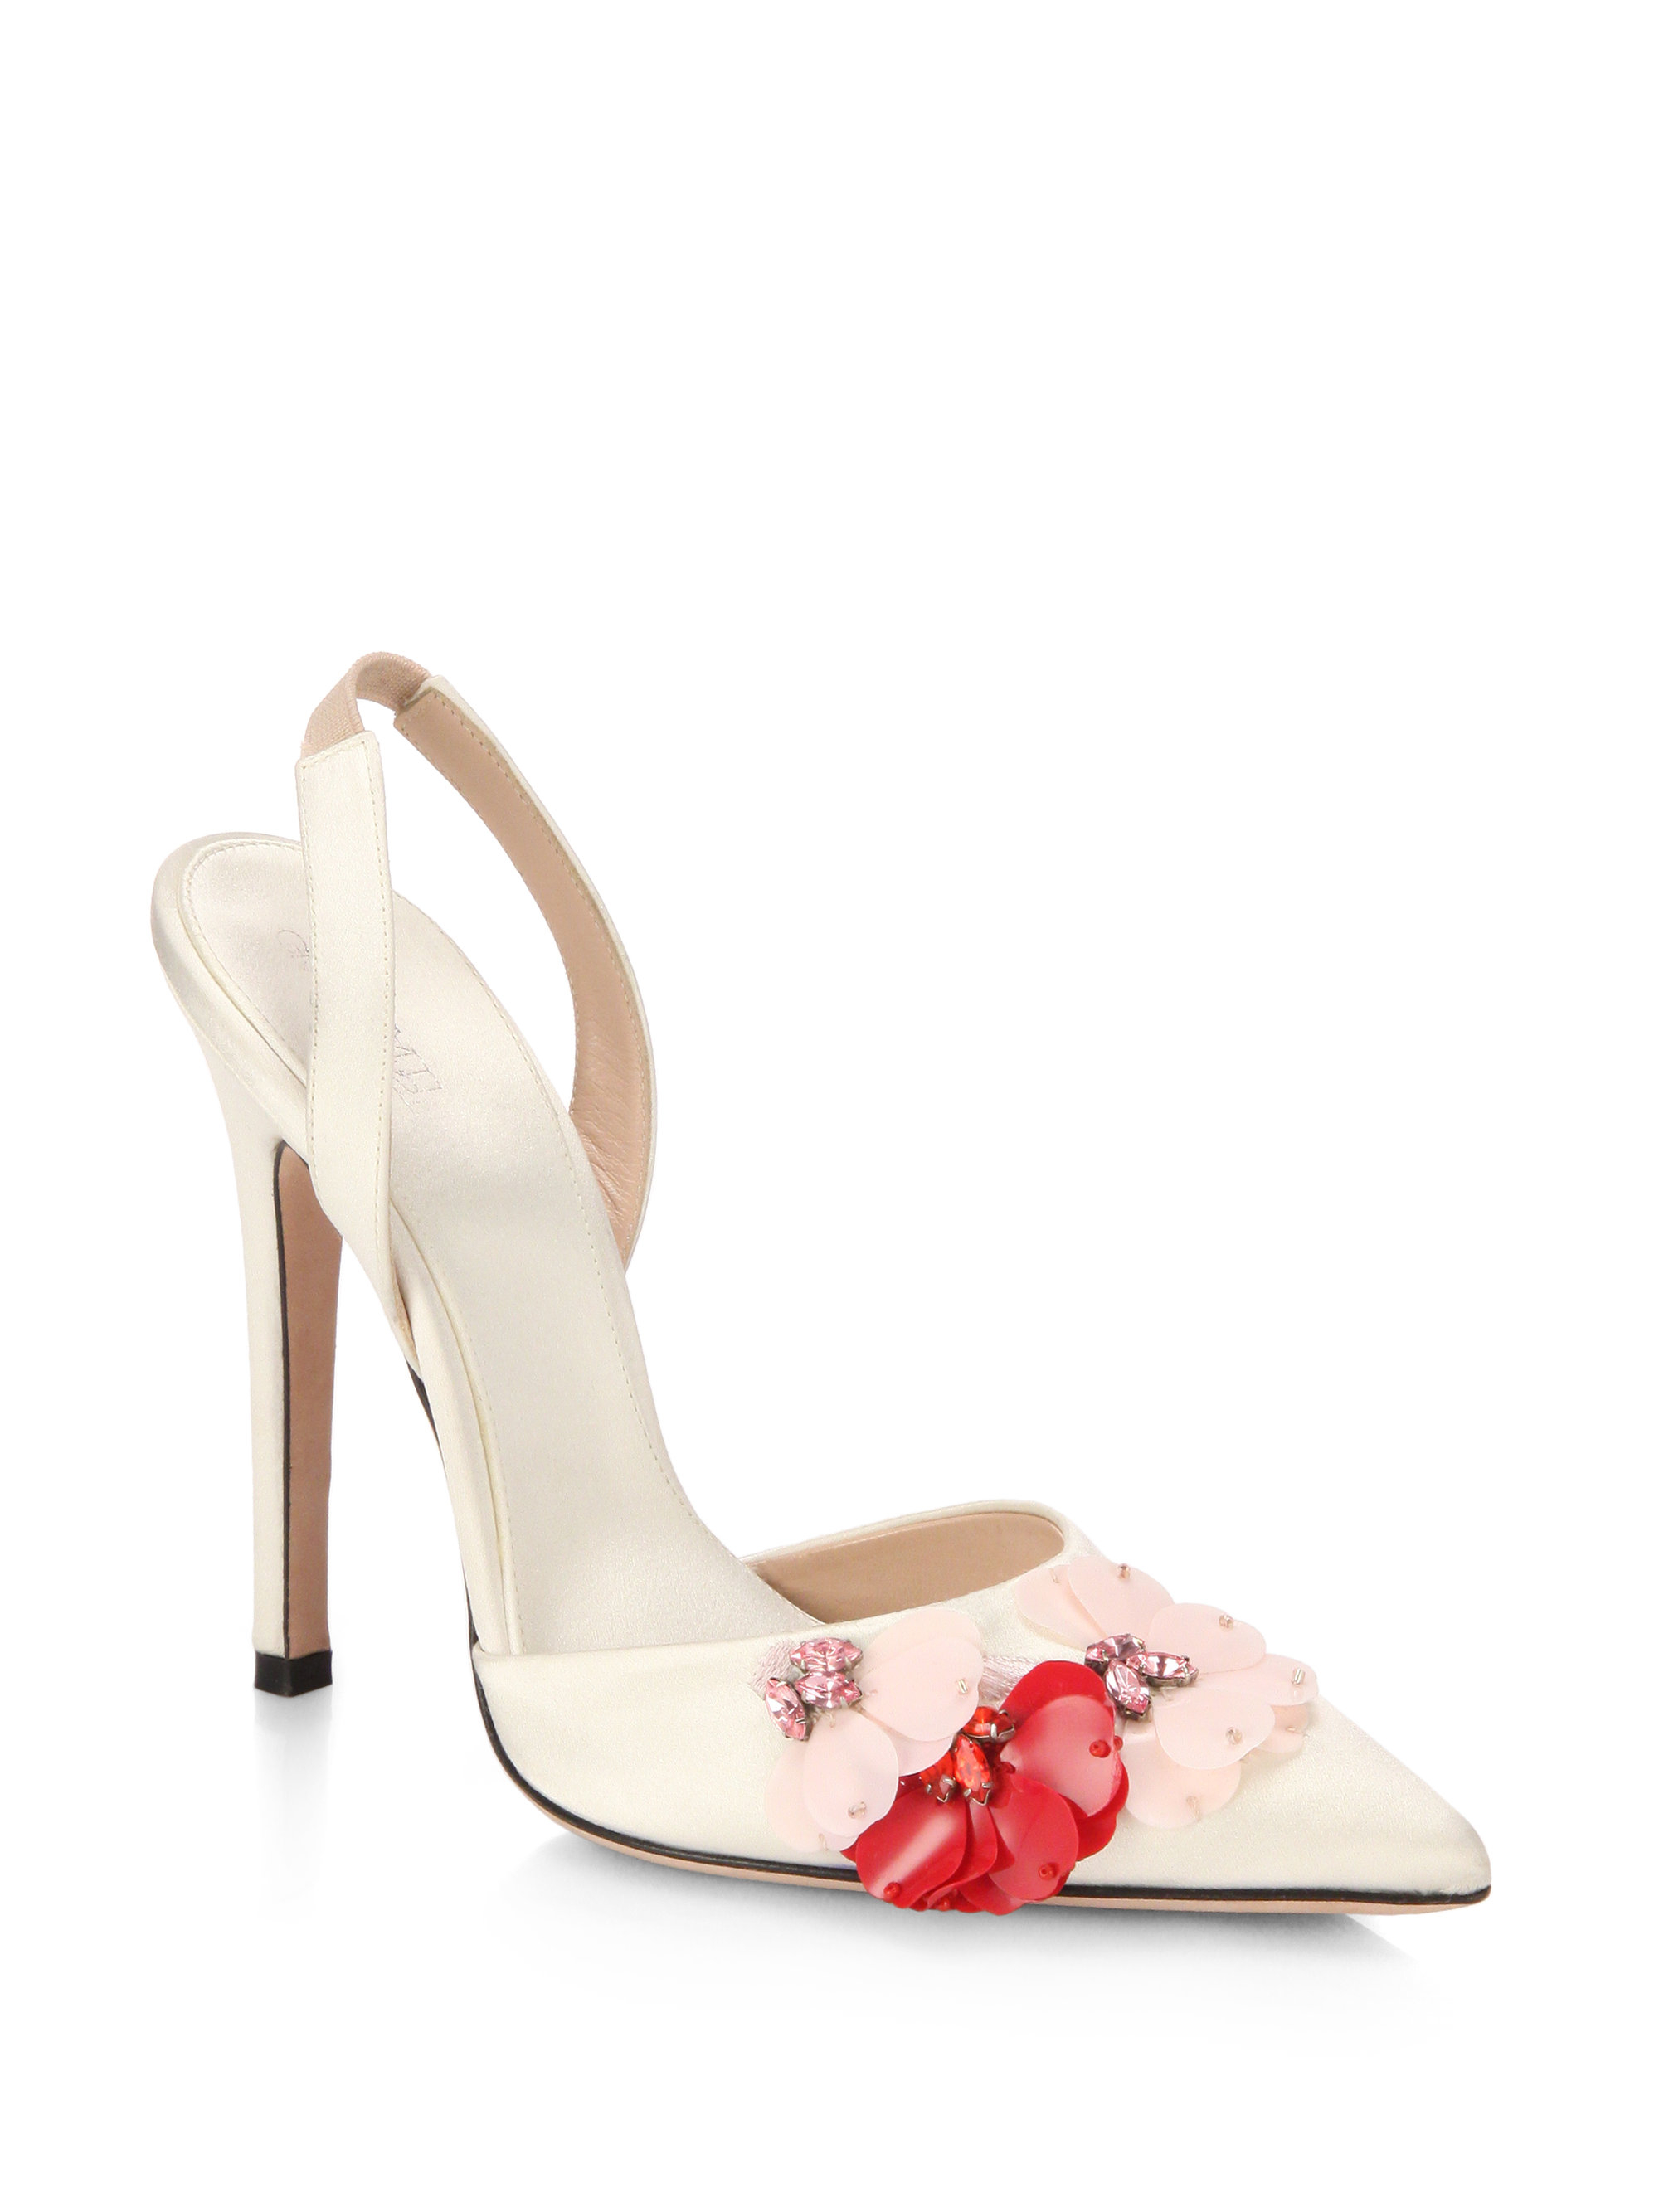 Giambattista Valli Star Slingback Pump